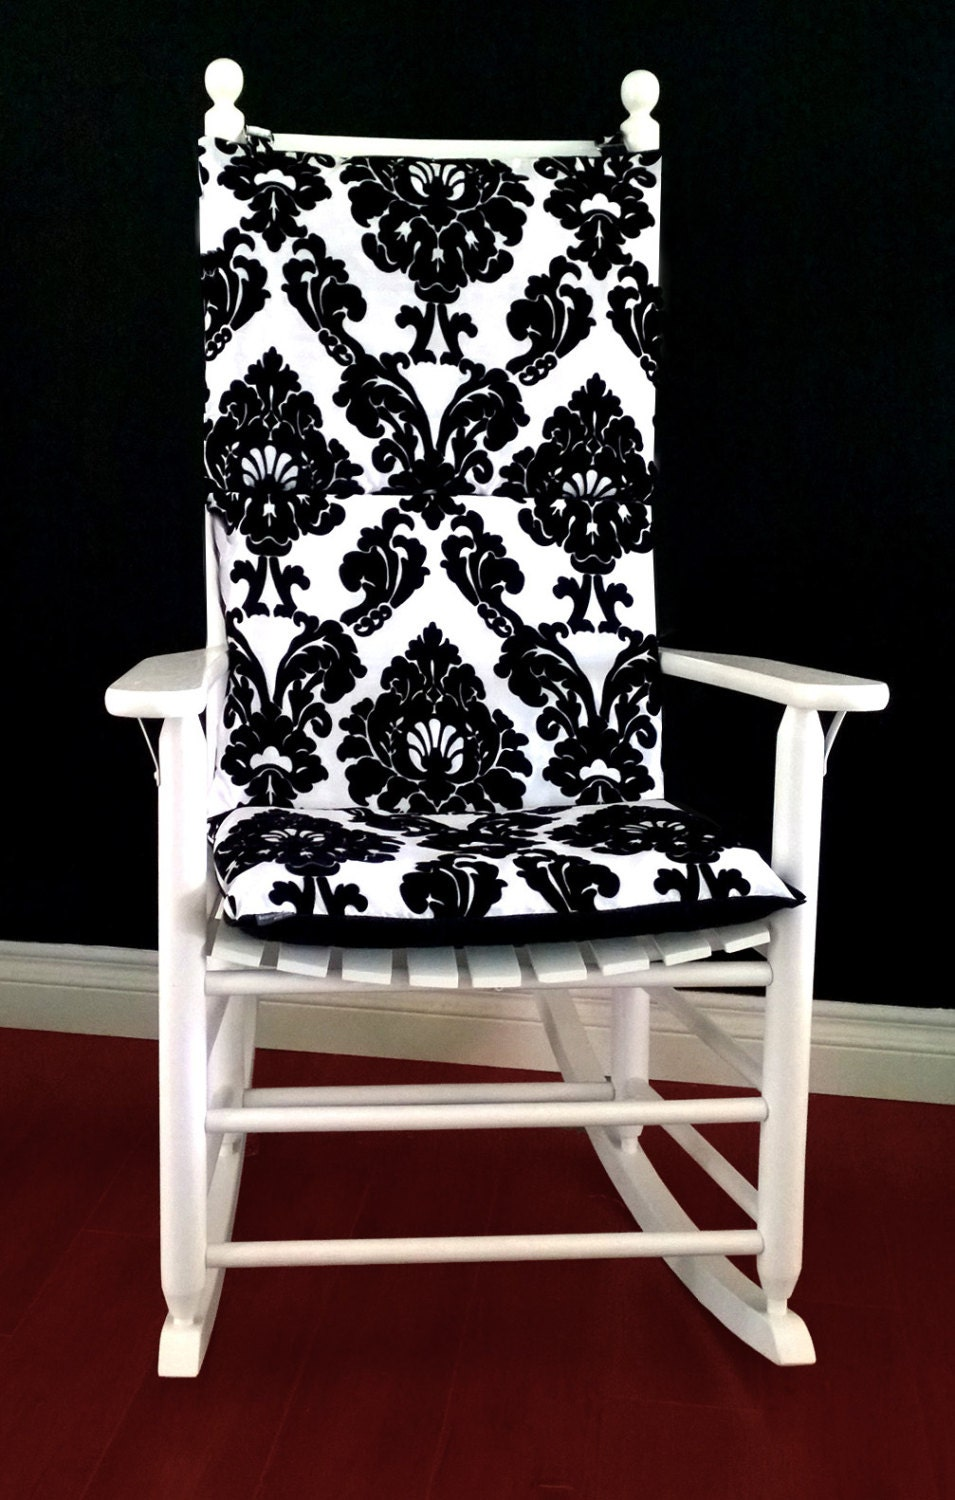 ON SALE Rocking Chair Cushion Cover Dior Black White Flocked